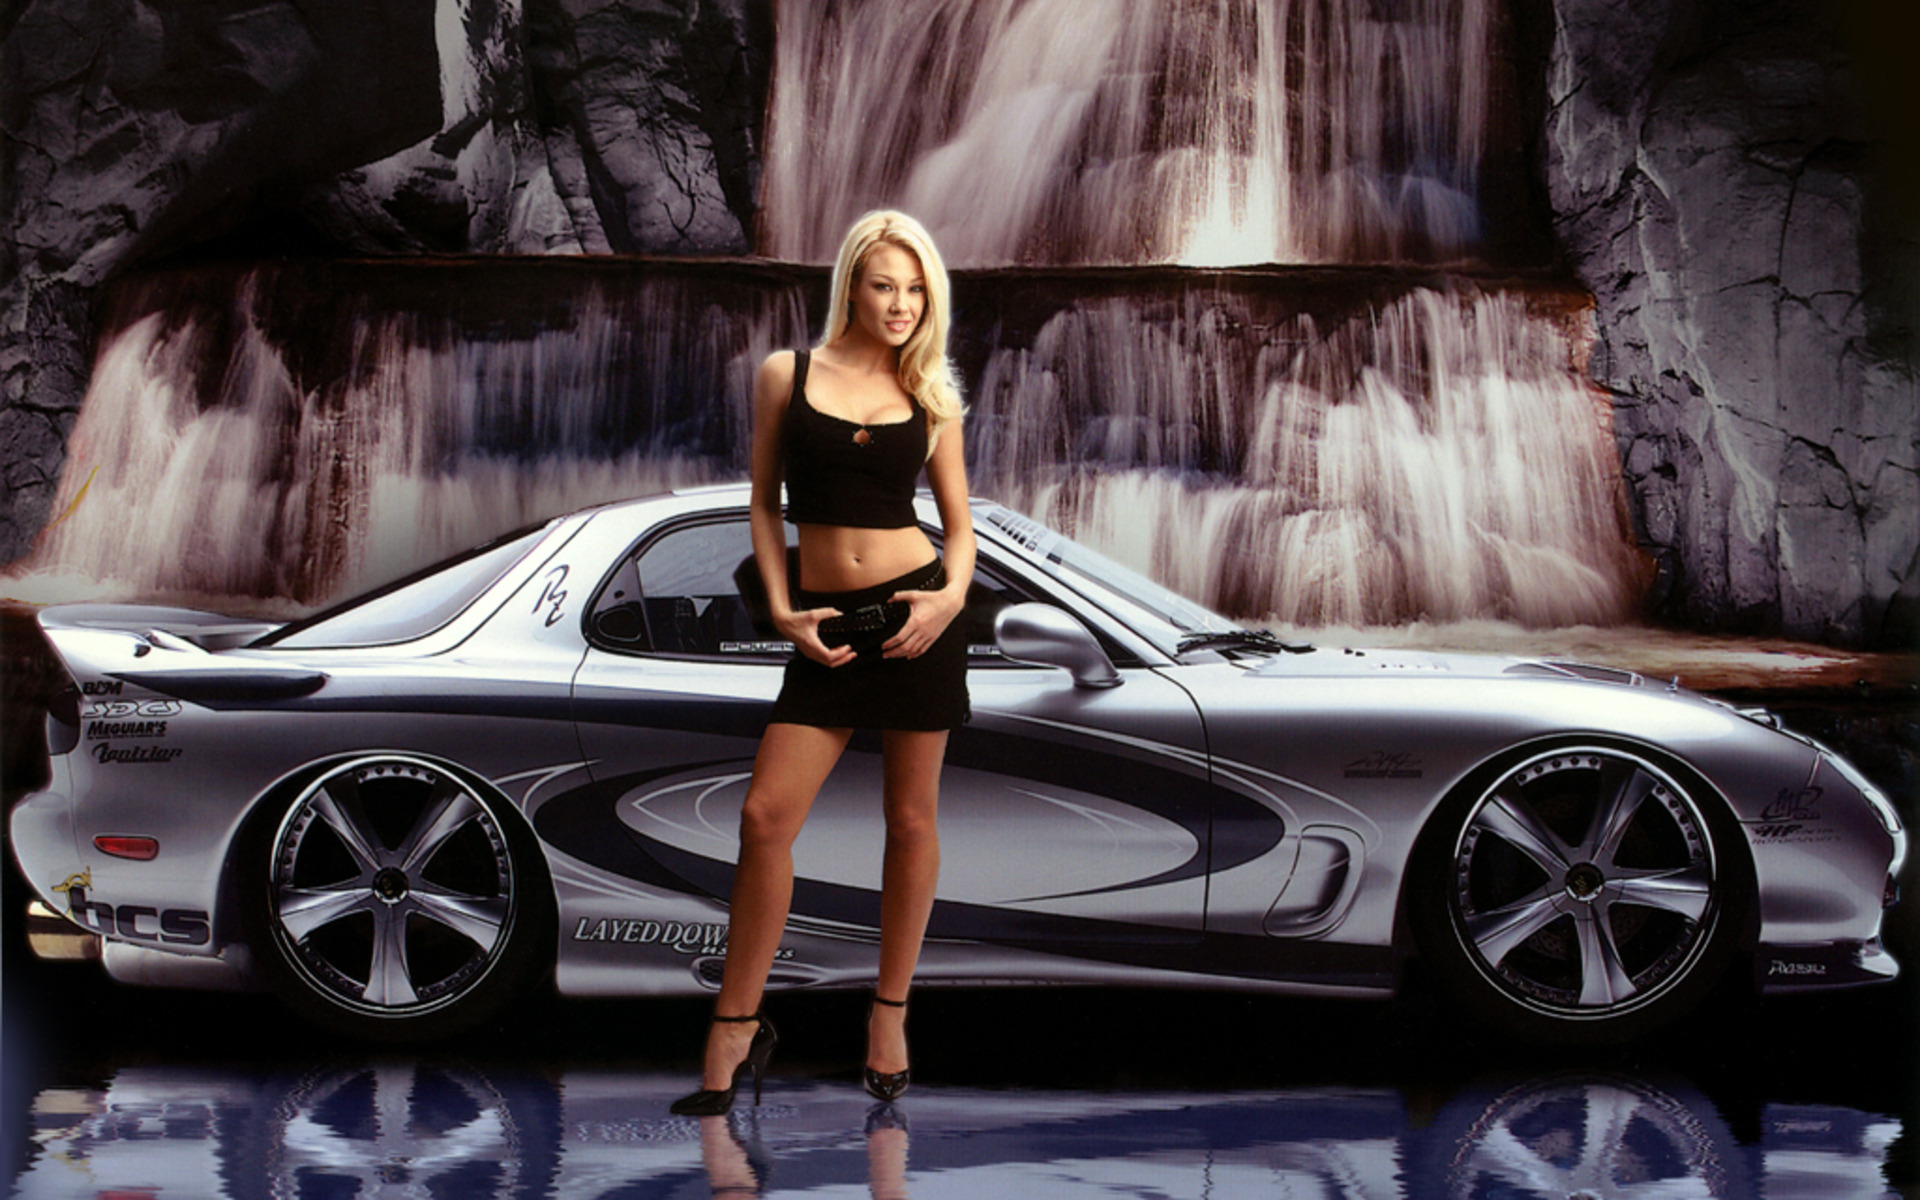 Smooth hot cool cars and girls